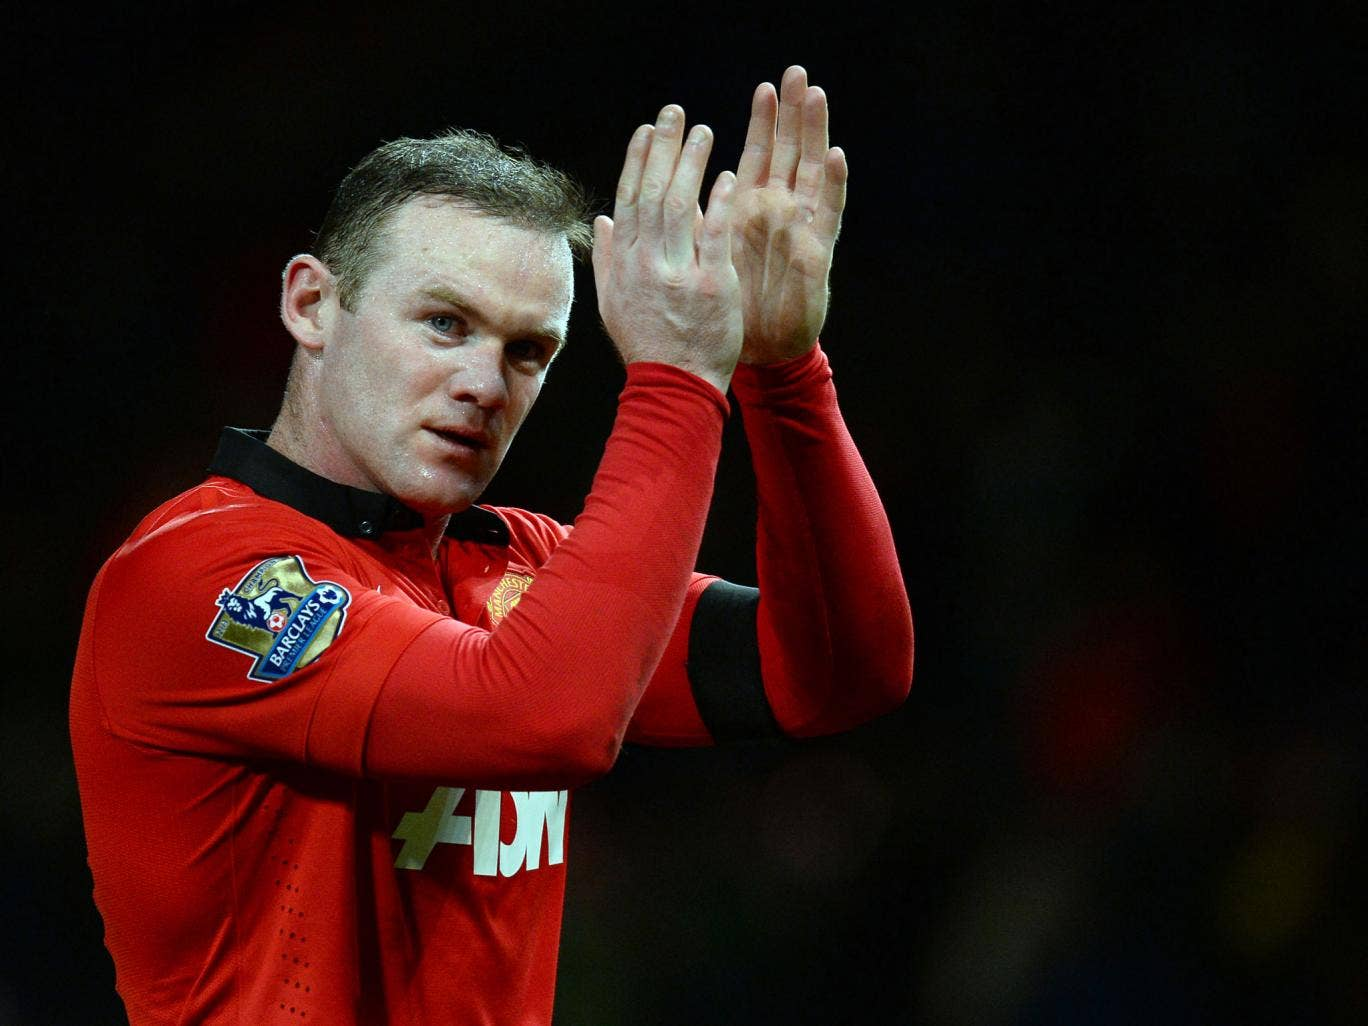 Wayne Rooney is reportedly set to agree a new four-and-a-half year contract worth £300,000-a-week